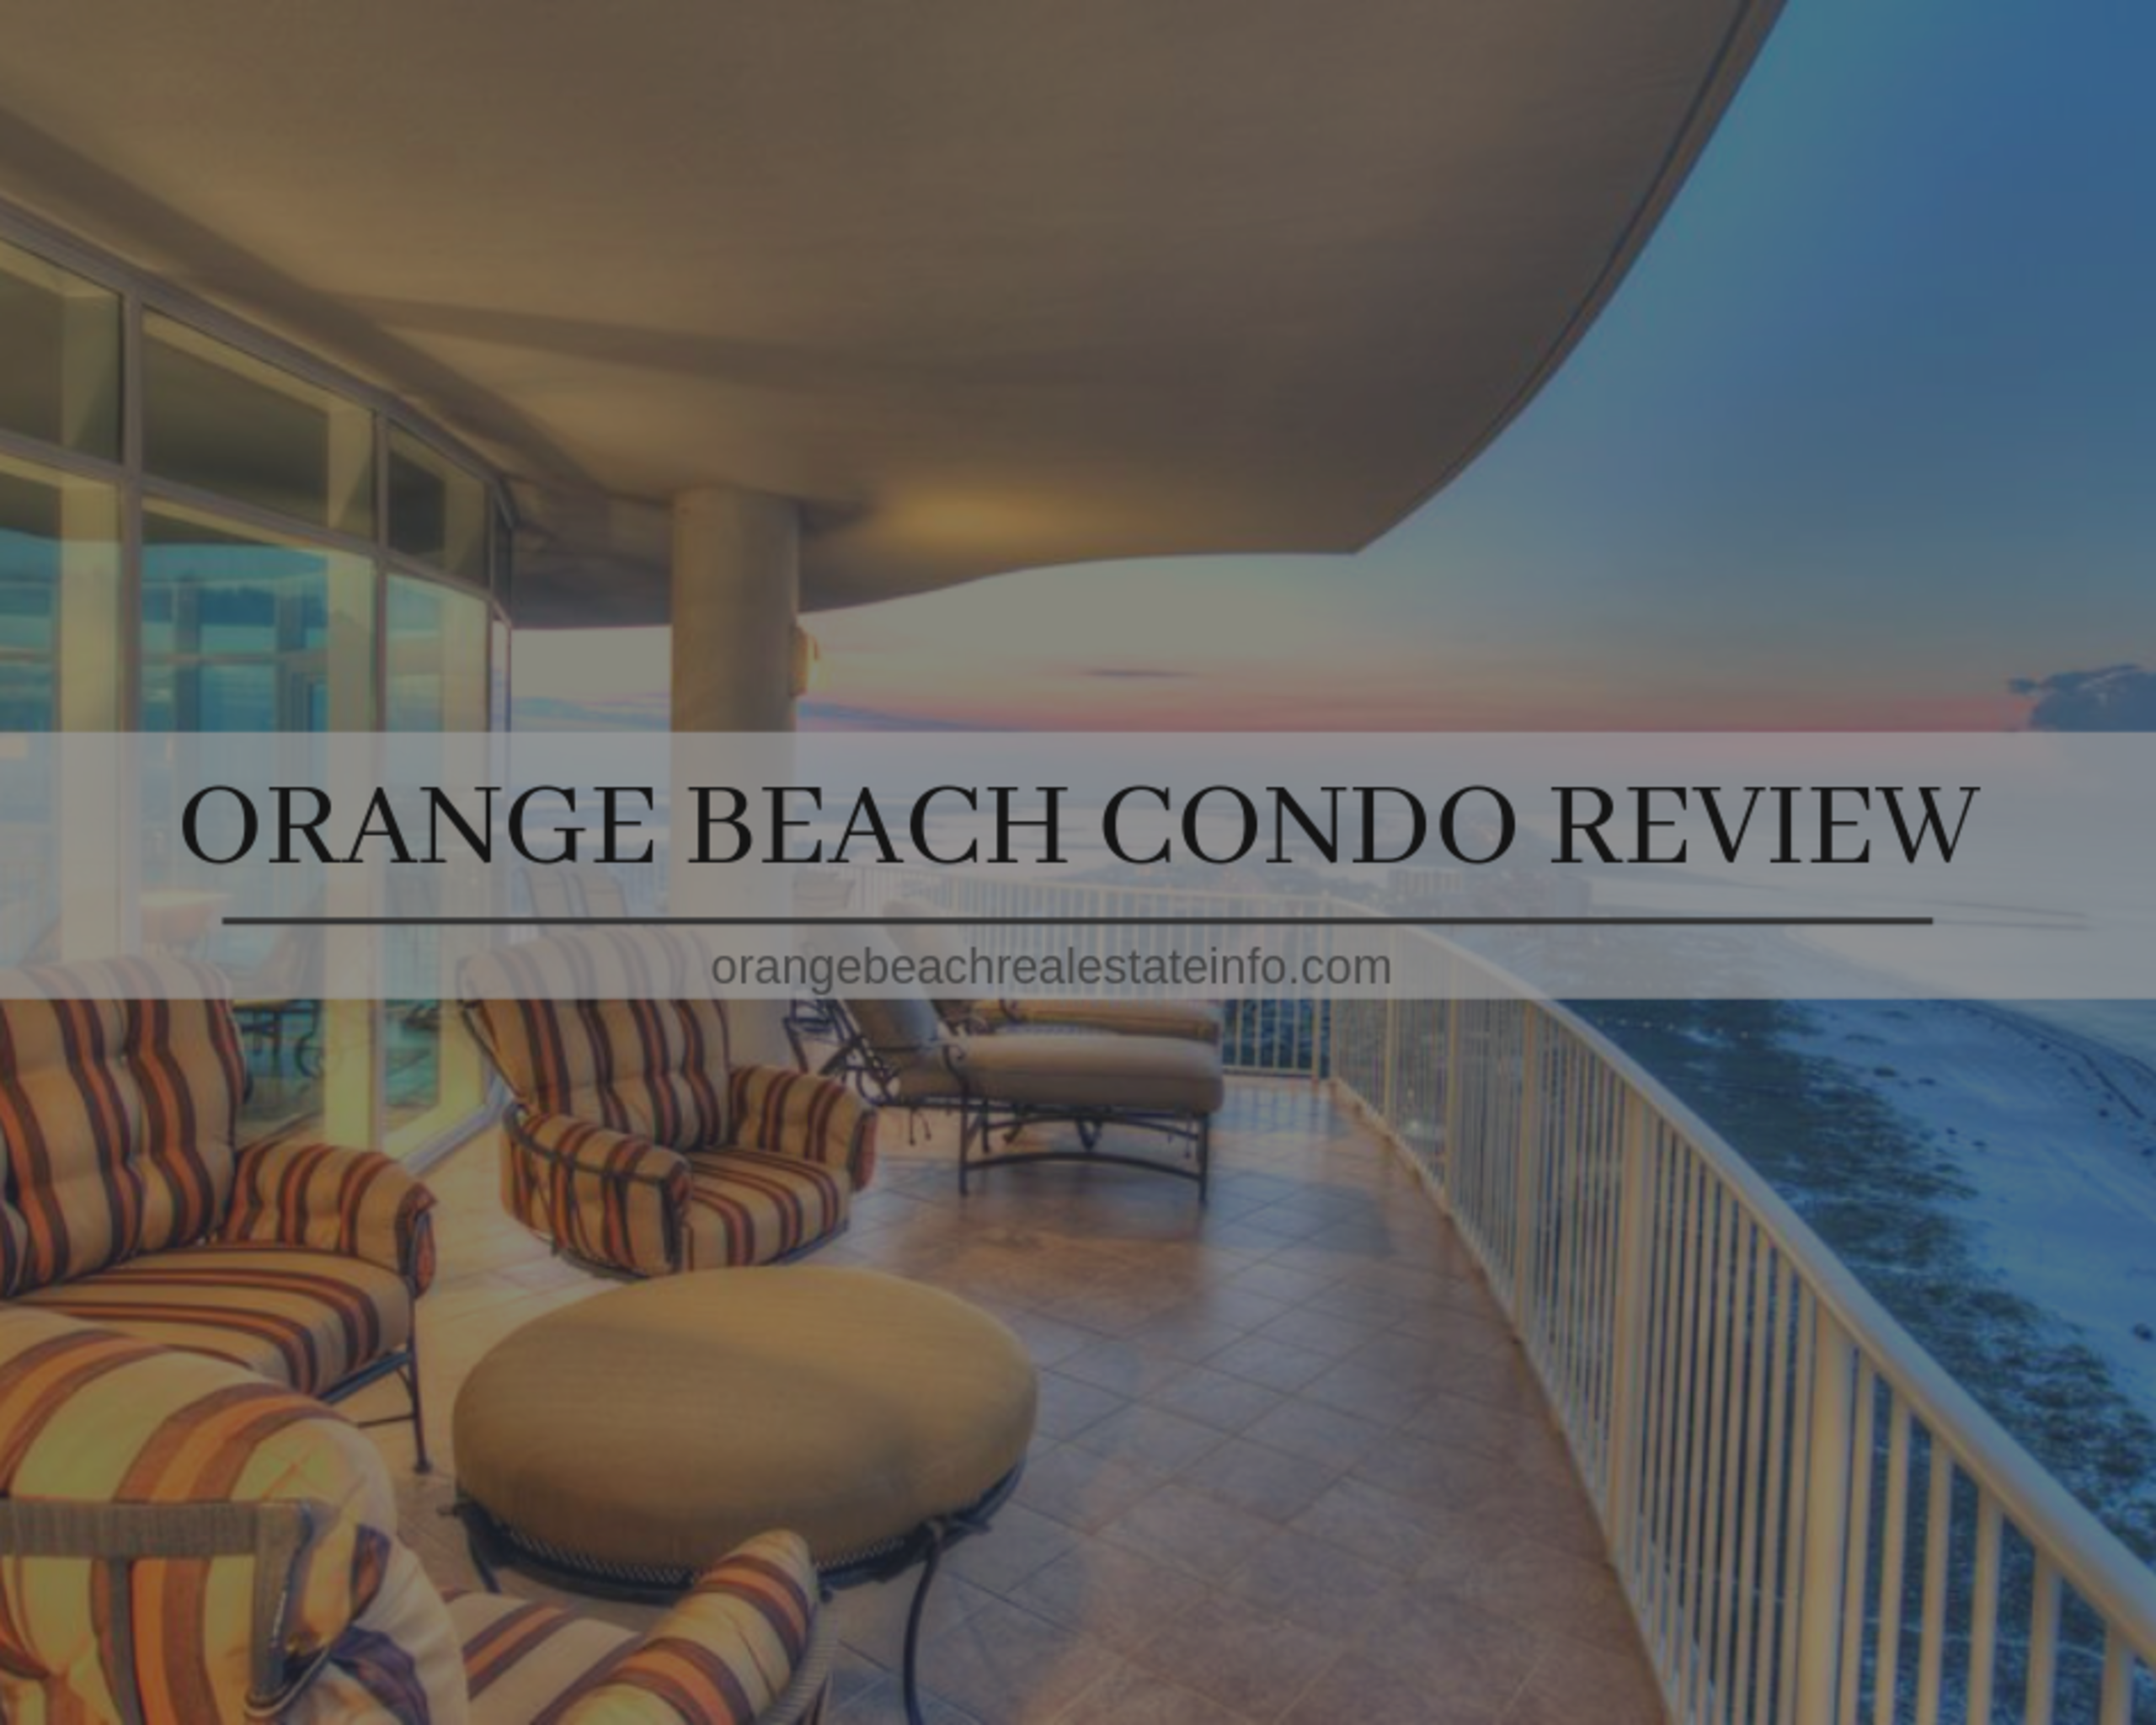 Orange Beach Condo Review – May 2019